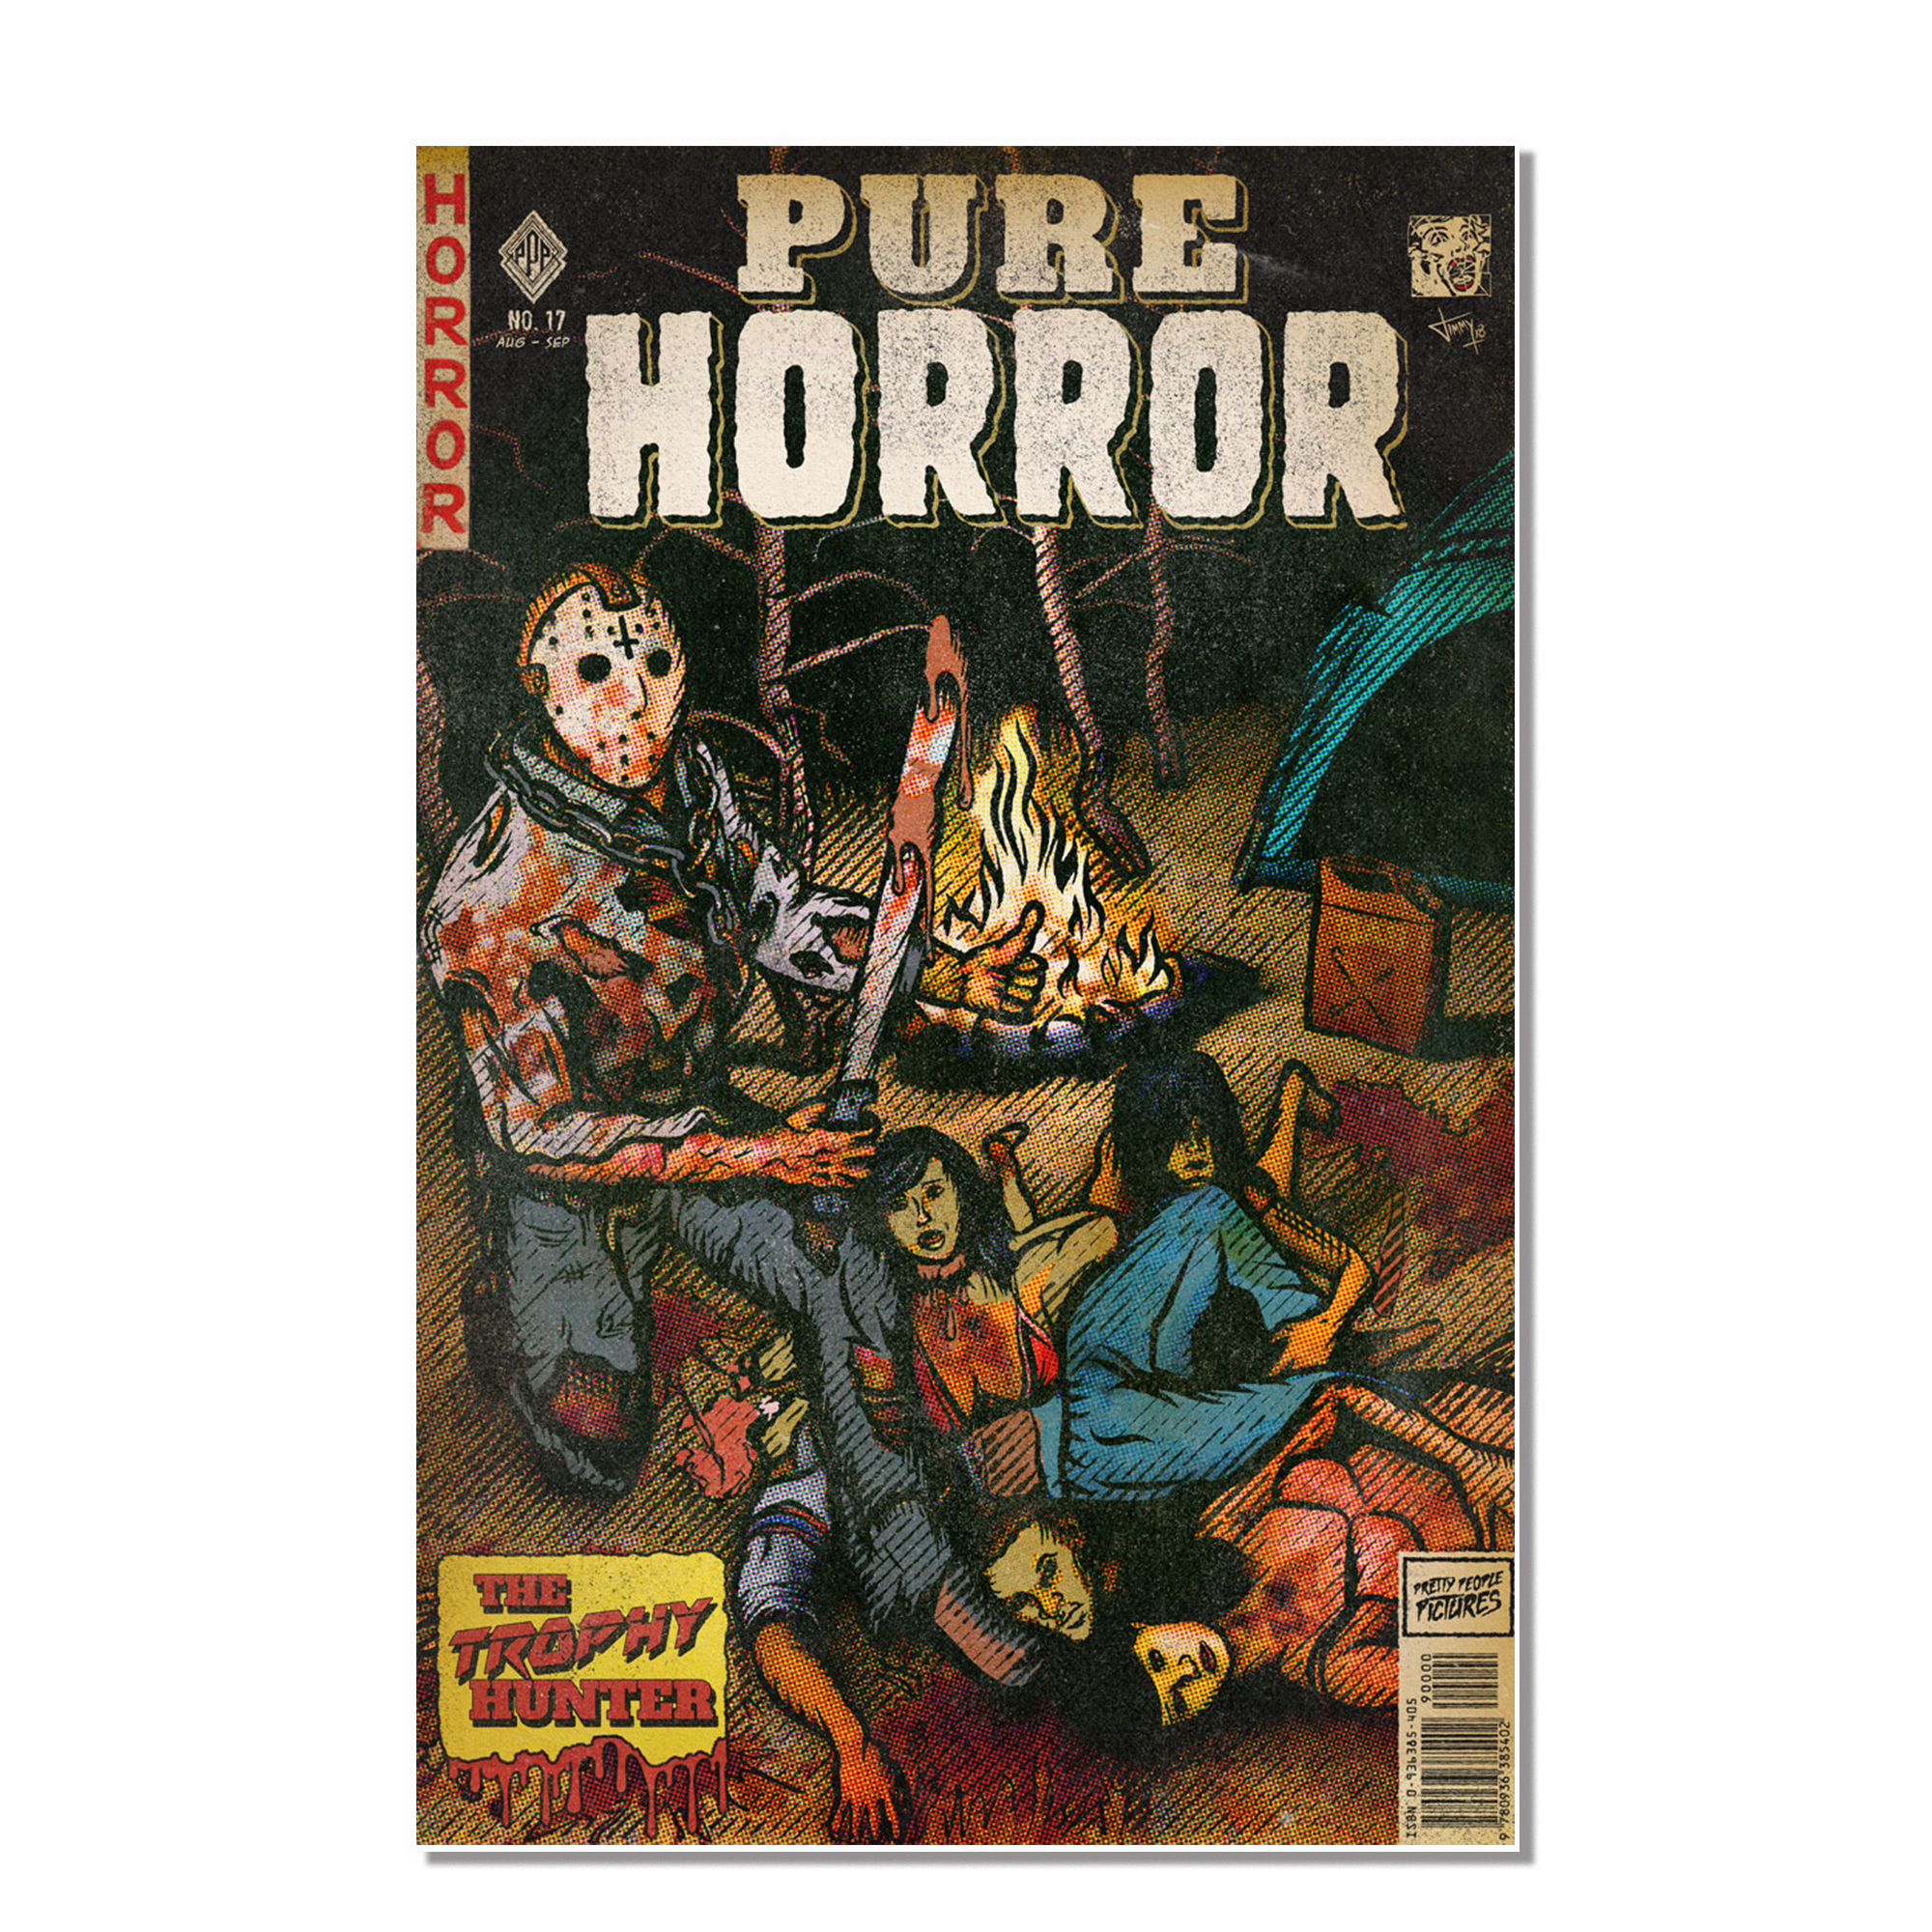 PureHorror-COVER-10-ALPHA.png